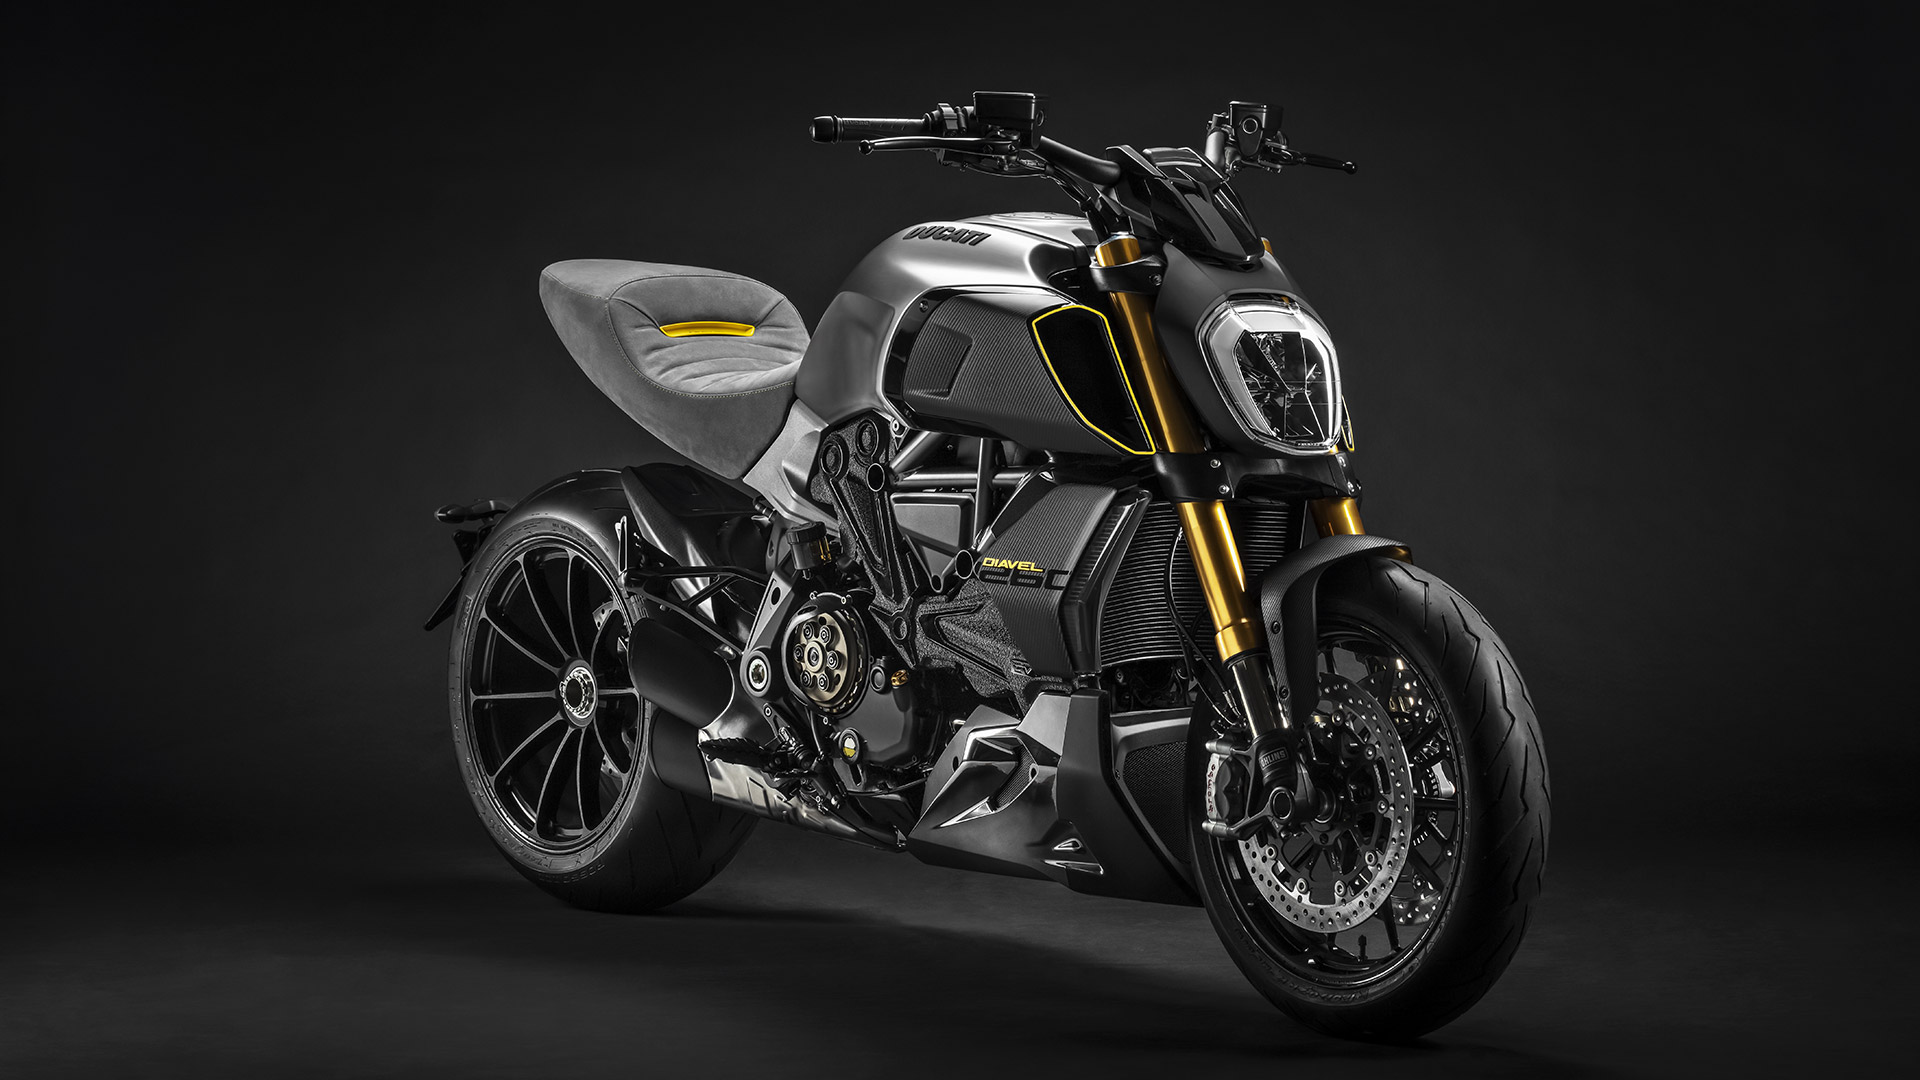 Diavel-1260-Design-Week-02-Gallery-1920x1080.jpg